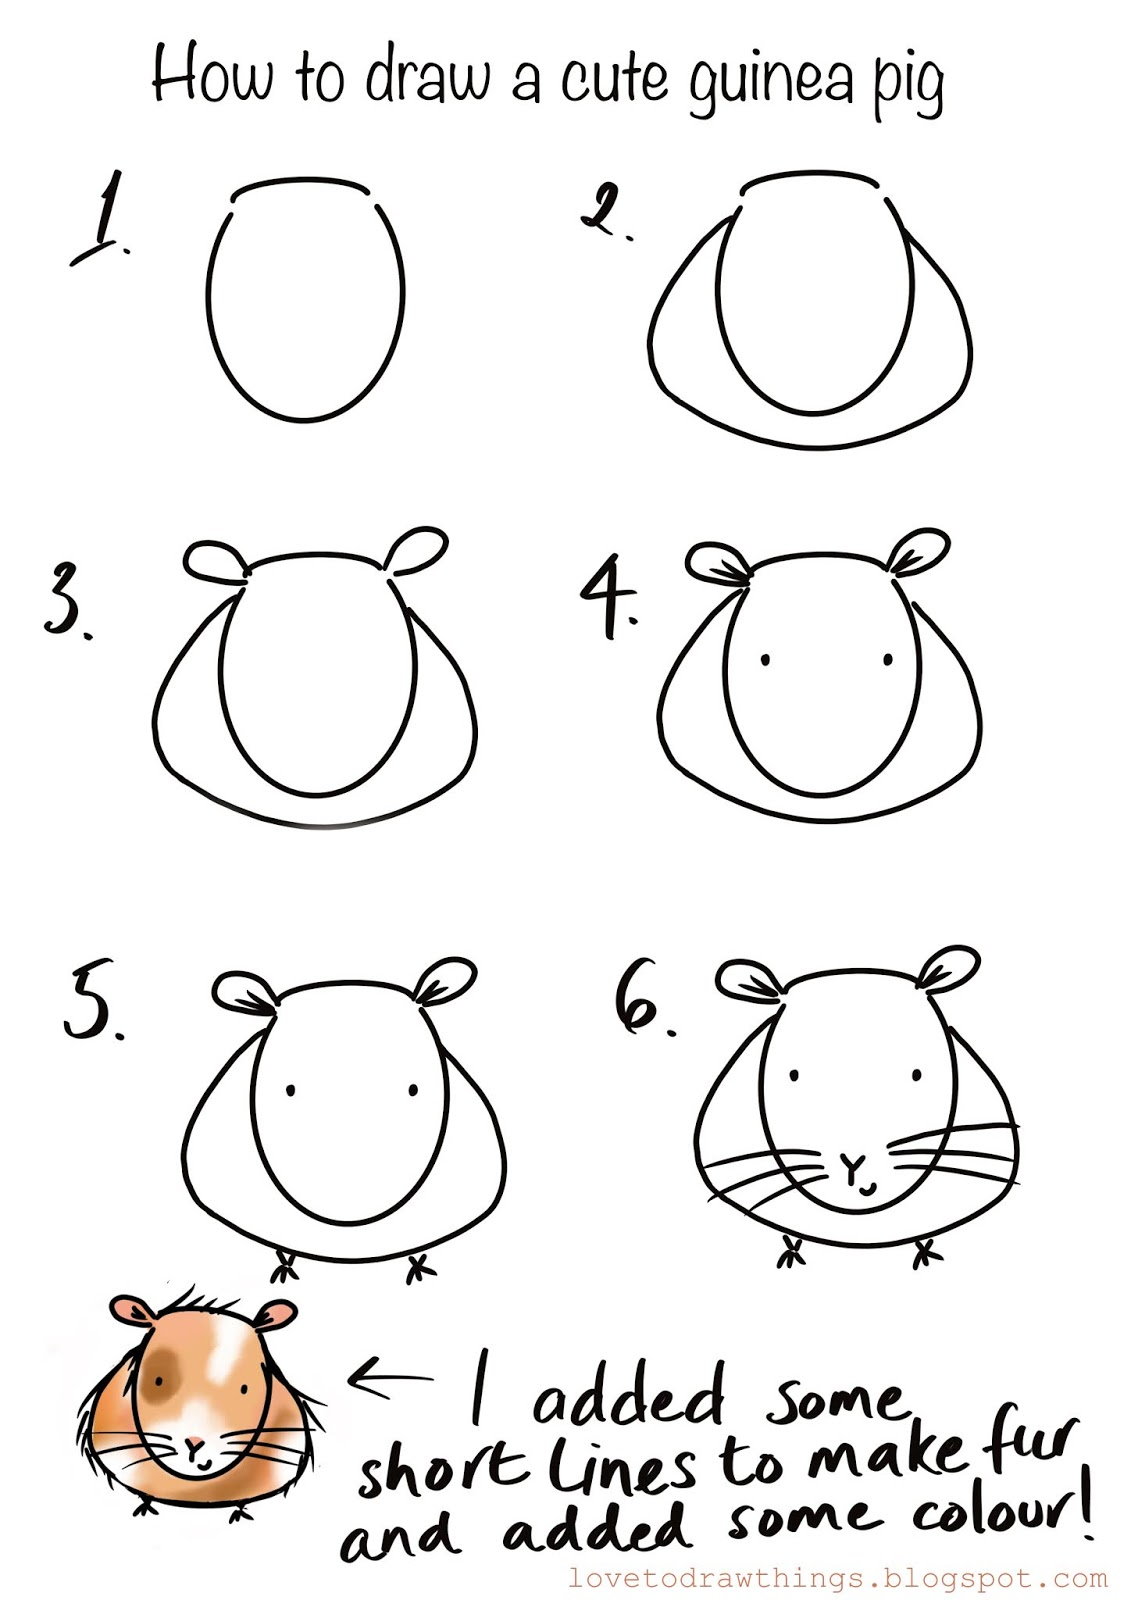 Love To Draw Things How To Draw A Cute Guinea Pig